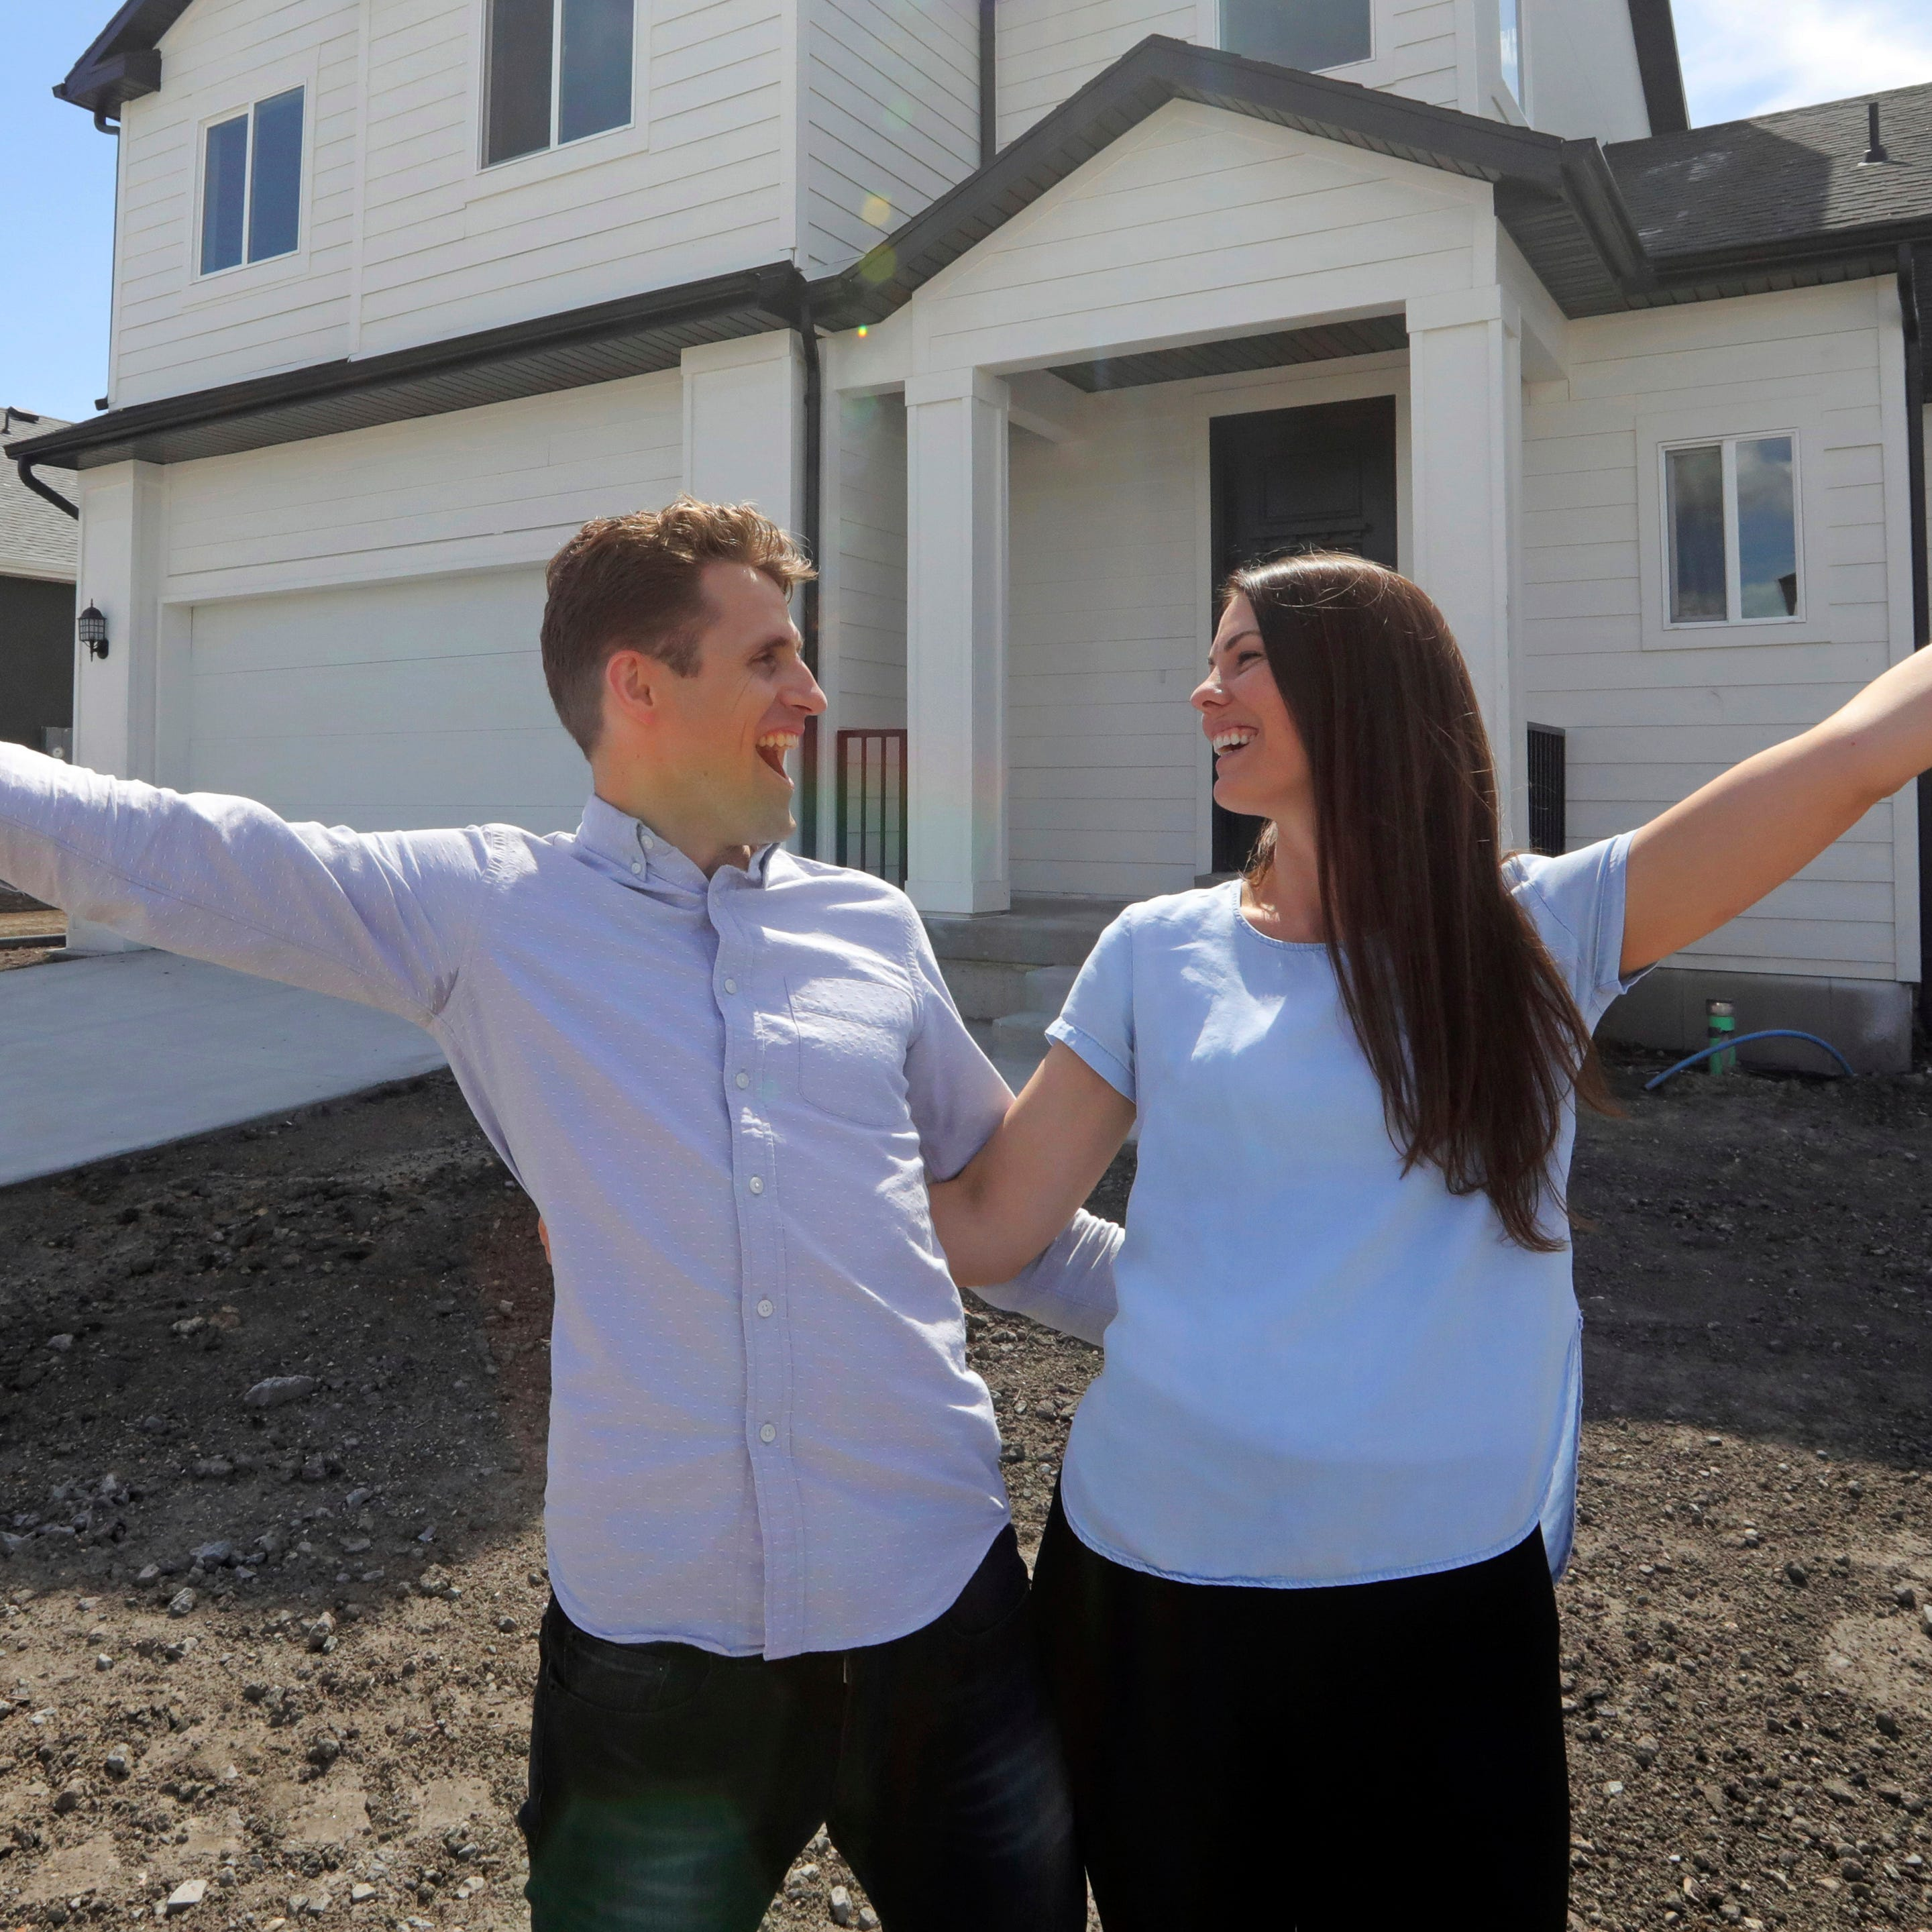 Millennials race to buy homes as prices outpace incomes